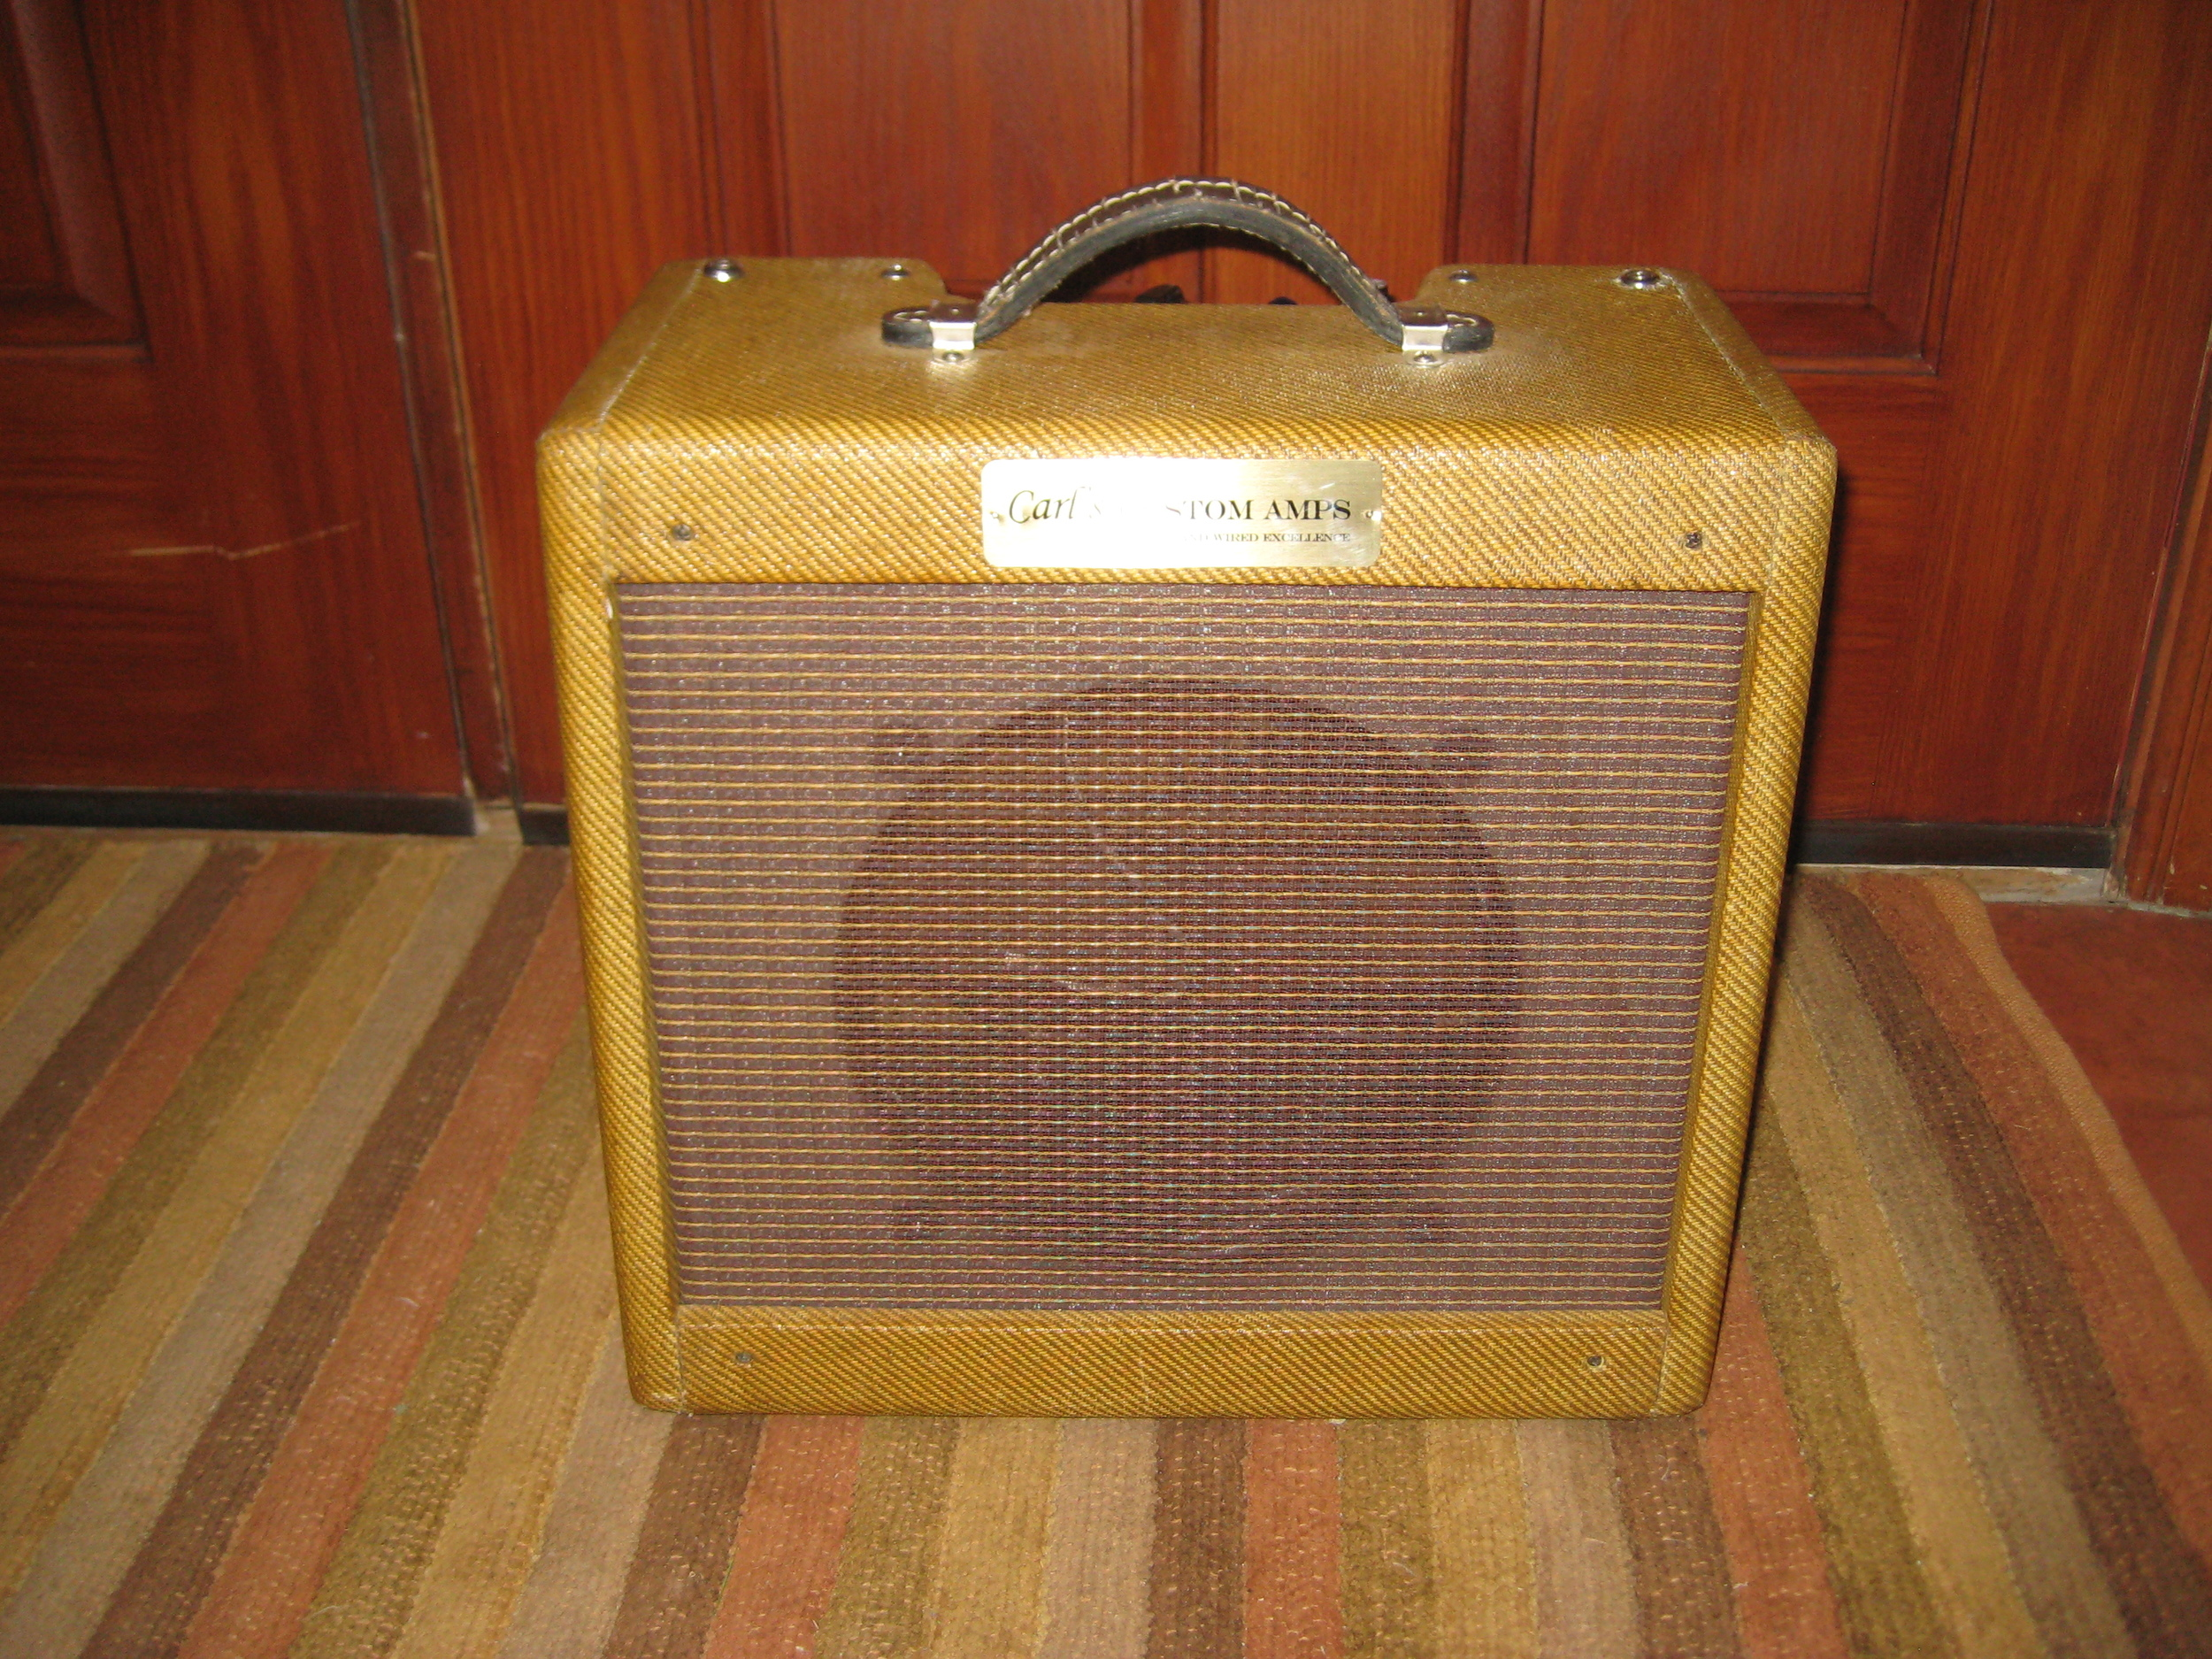 Another Pro Junior Retro-Fit. this time it has Supro style circuit with single 6L6 for 10 watts of power. Crunchy and mean sounding!